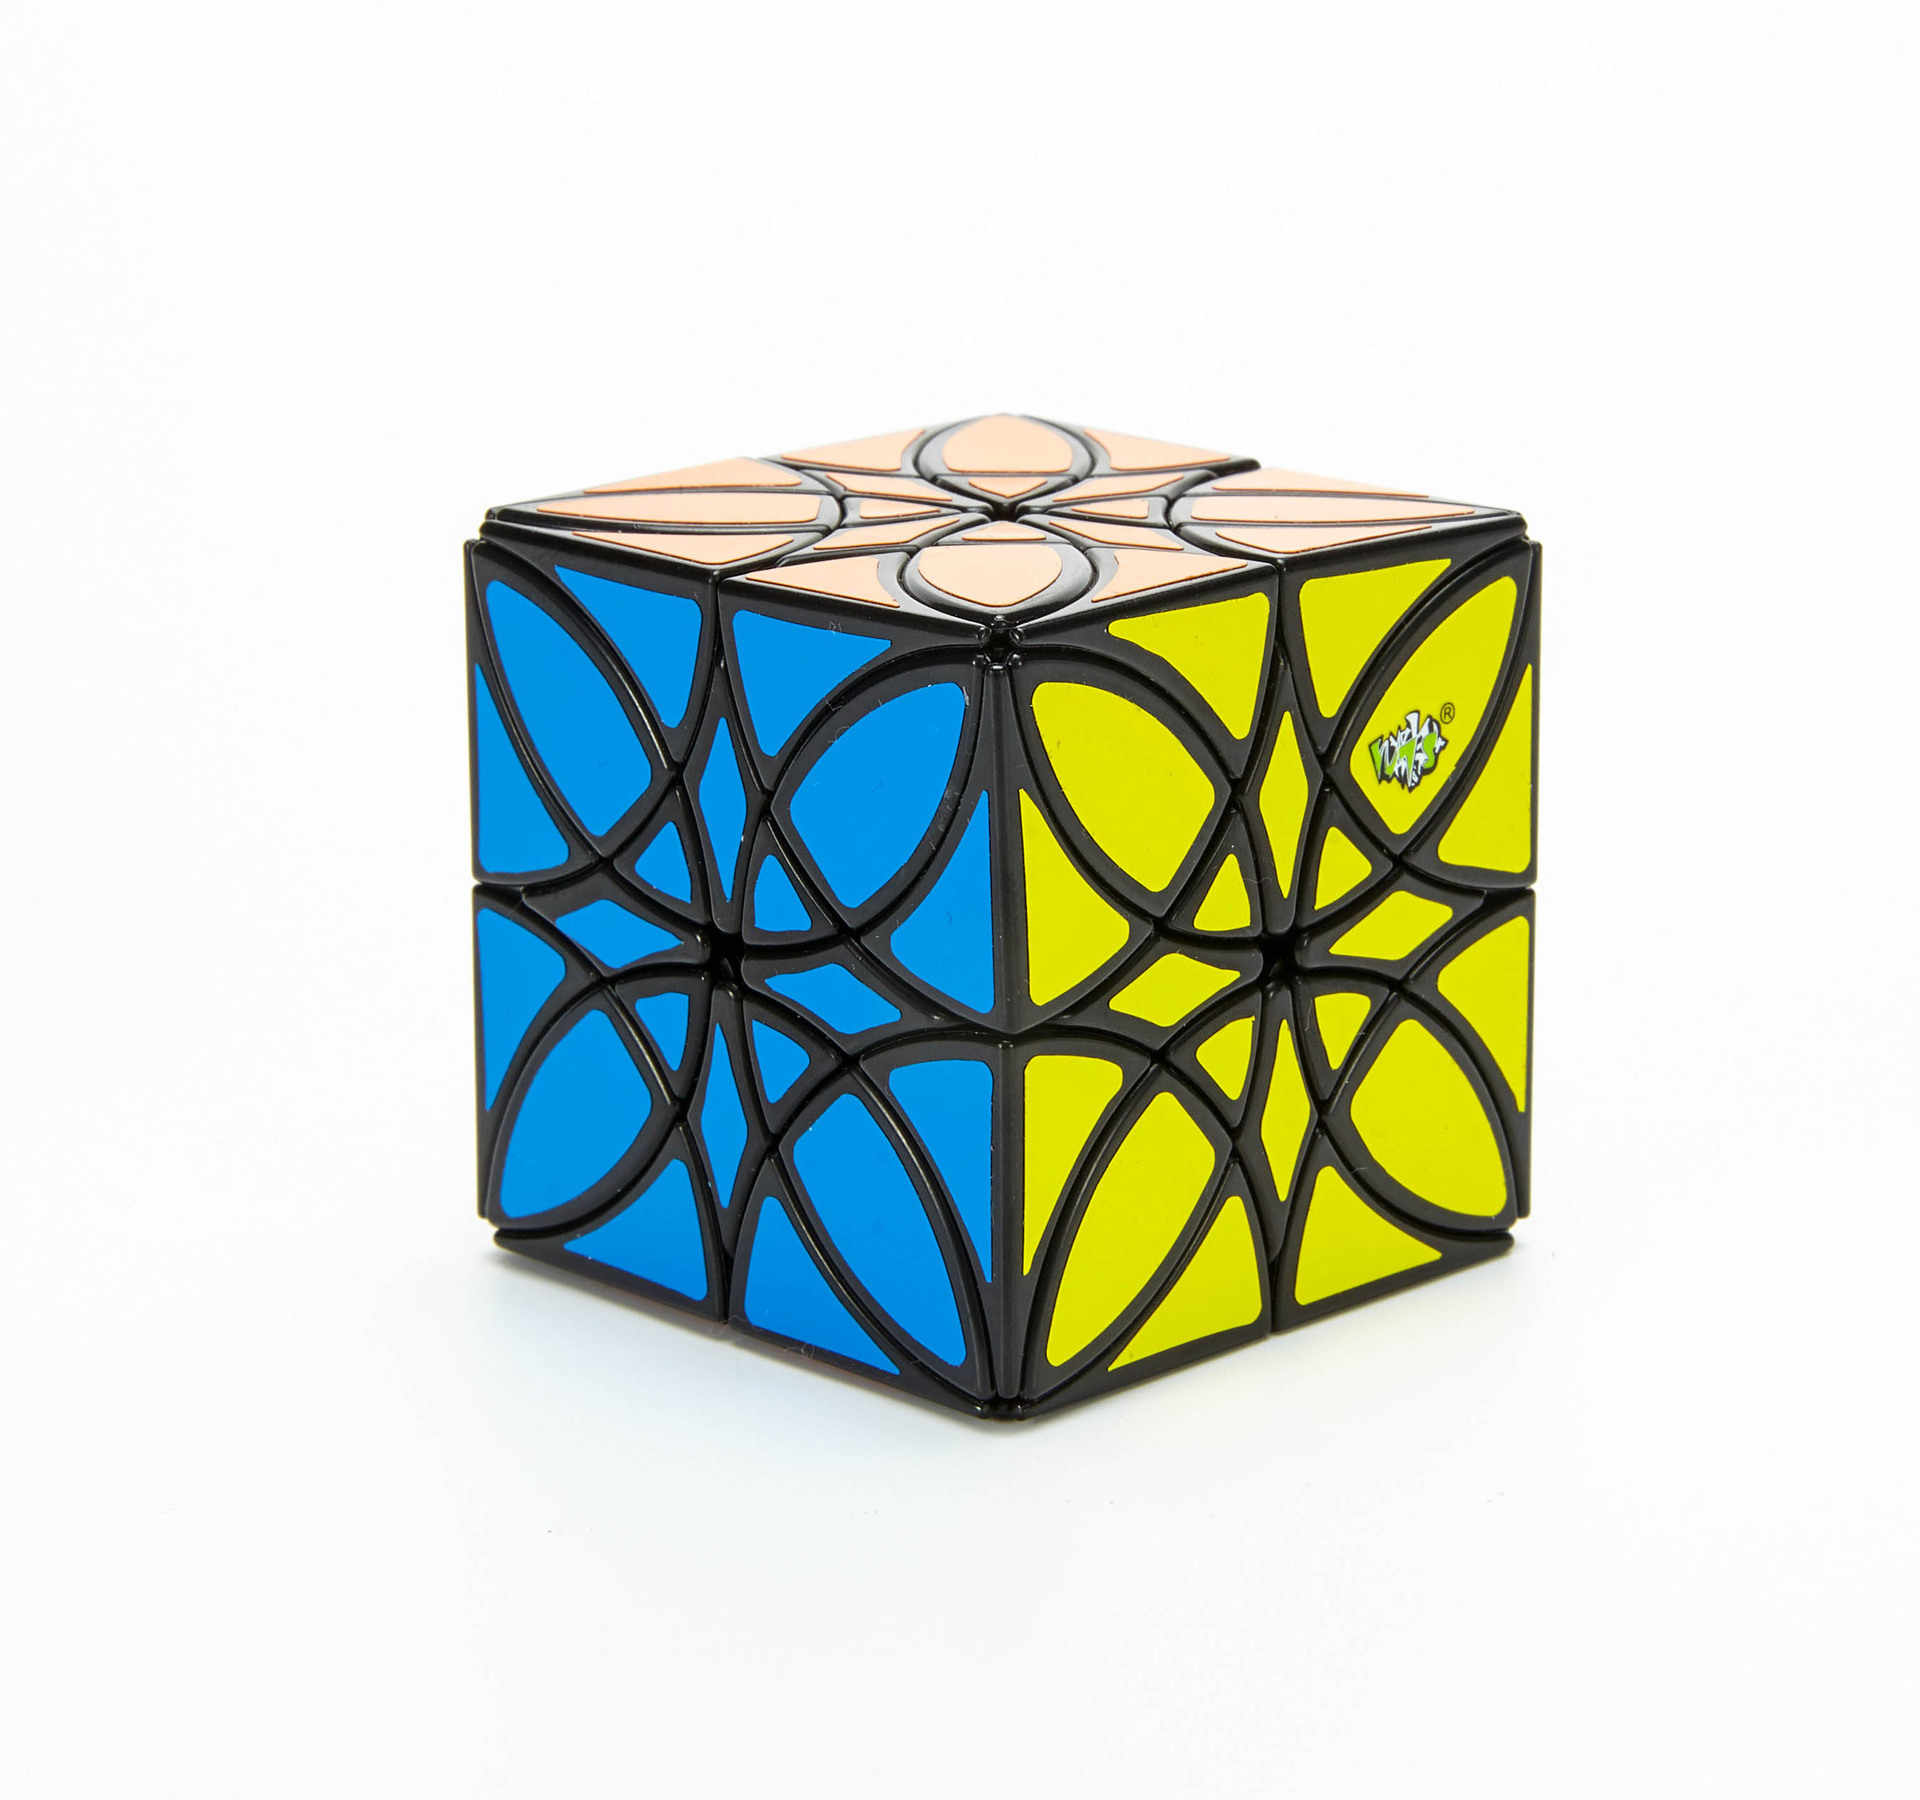 Lanlan Butterflower Cube